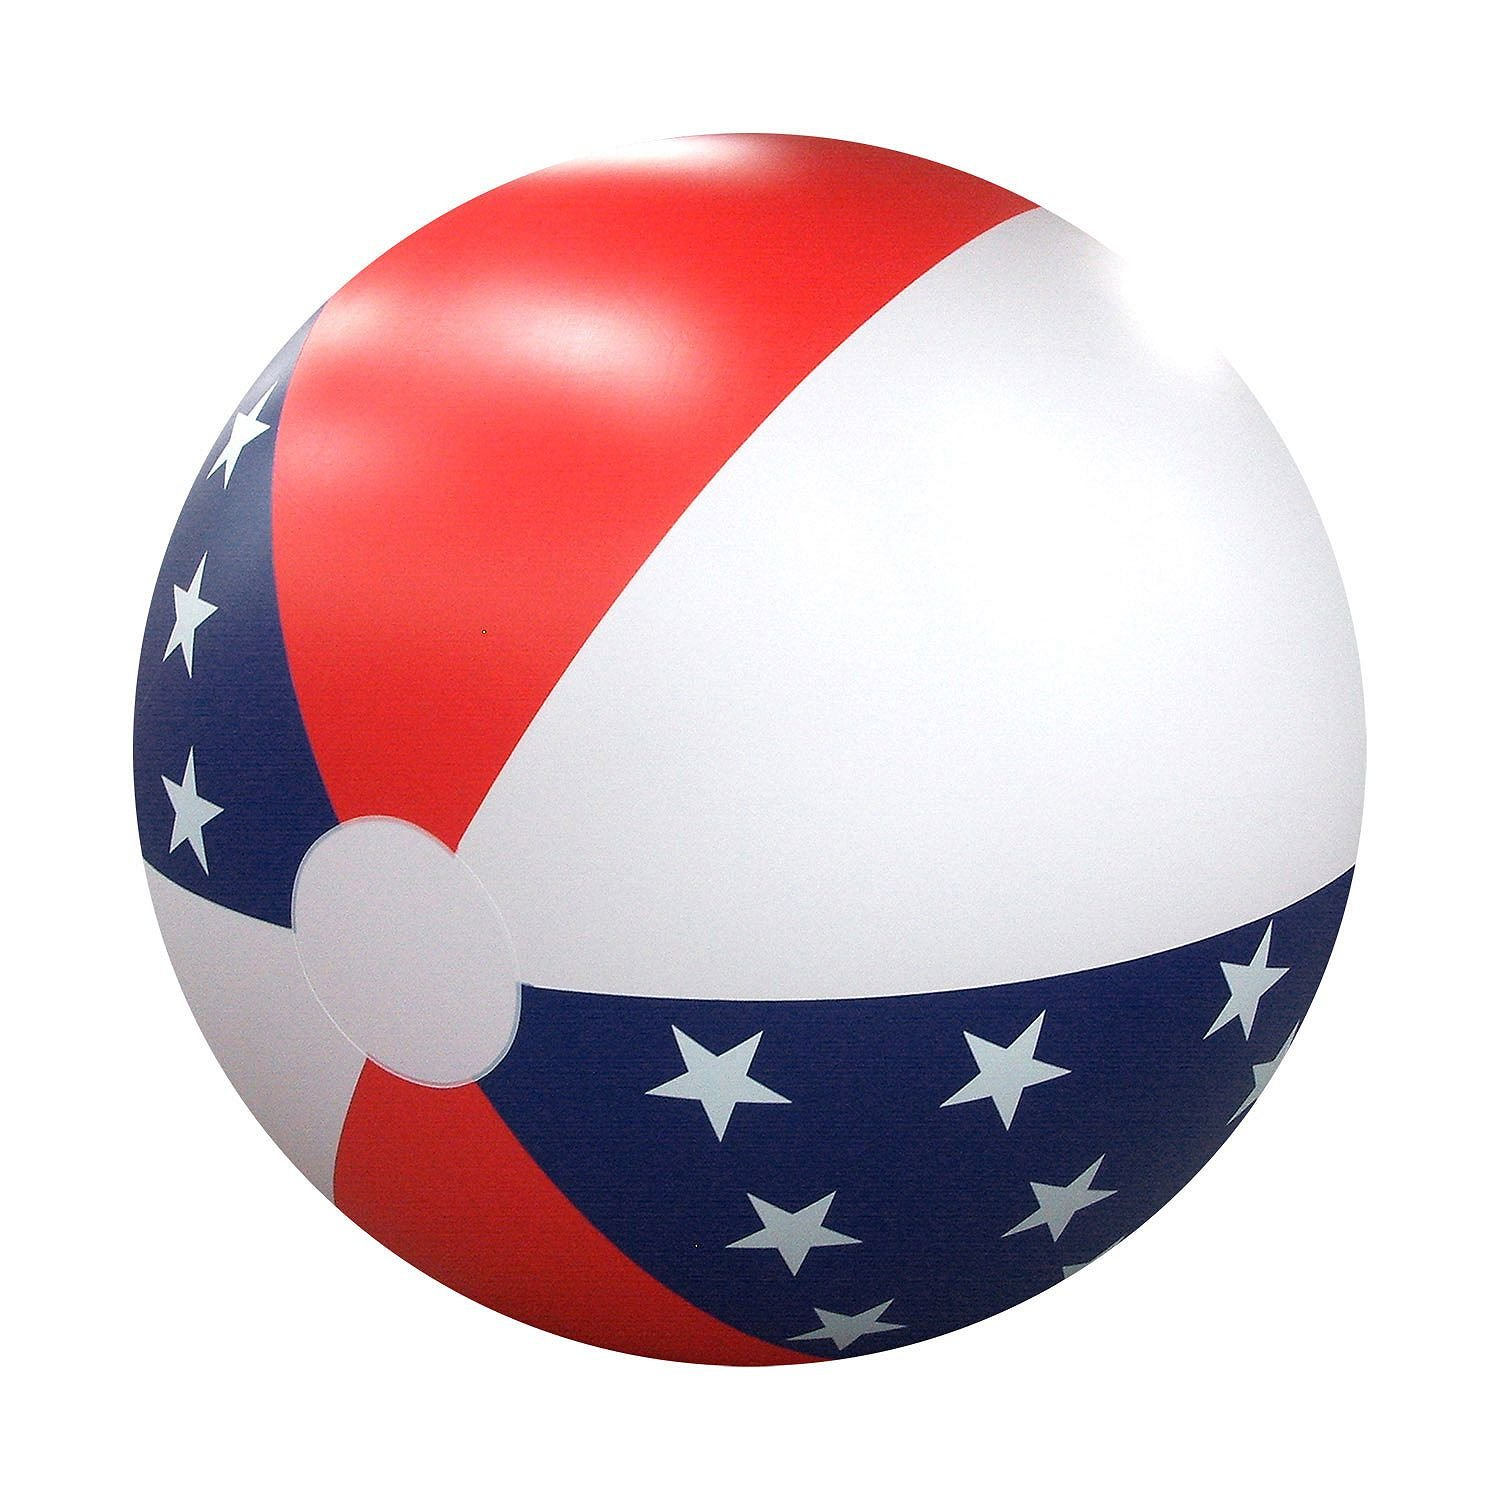 Sun Pleasure - Pelota de Playa Hinchable Gigante de 6 pies - Bola ...